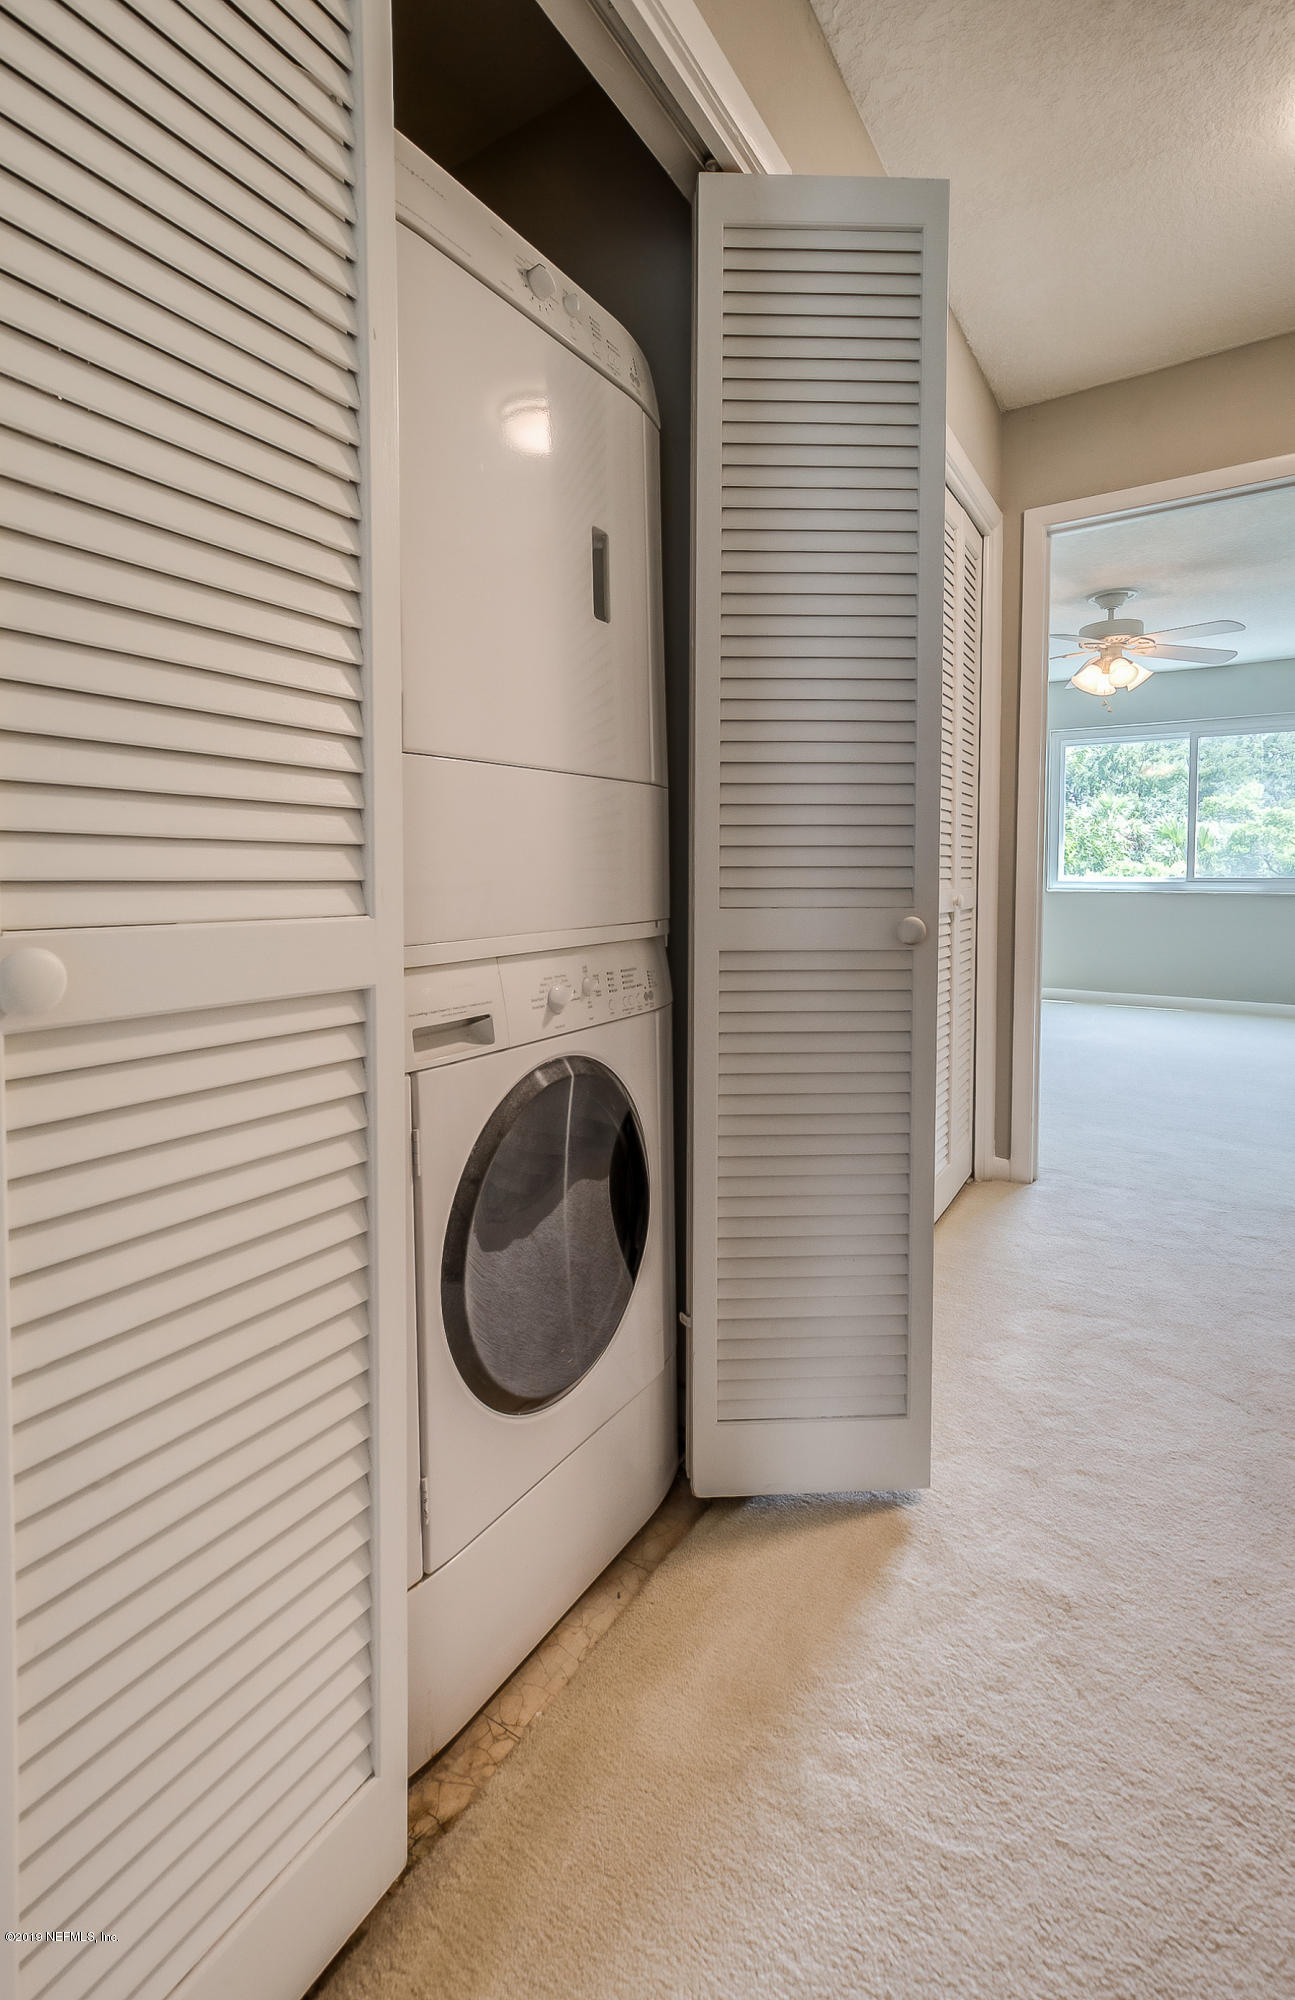 2950 ST JOHNS- JACKSONVILLE- FLORIDA 32205, 2 Bedrooms Bedrooms, ,2 BathroomsBathrooms,Condo,For sale,ST JOHNS,1003750